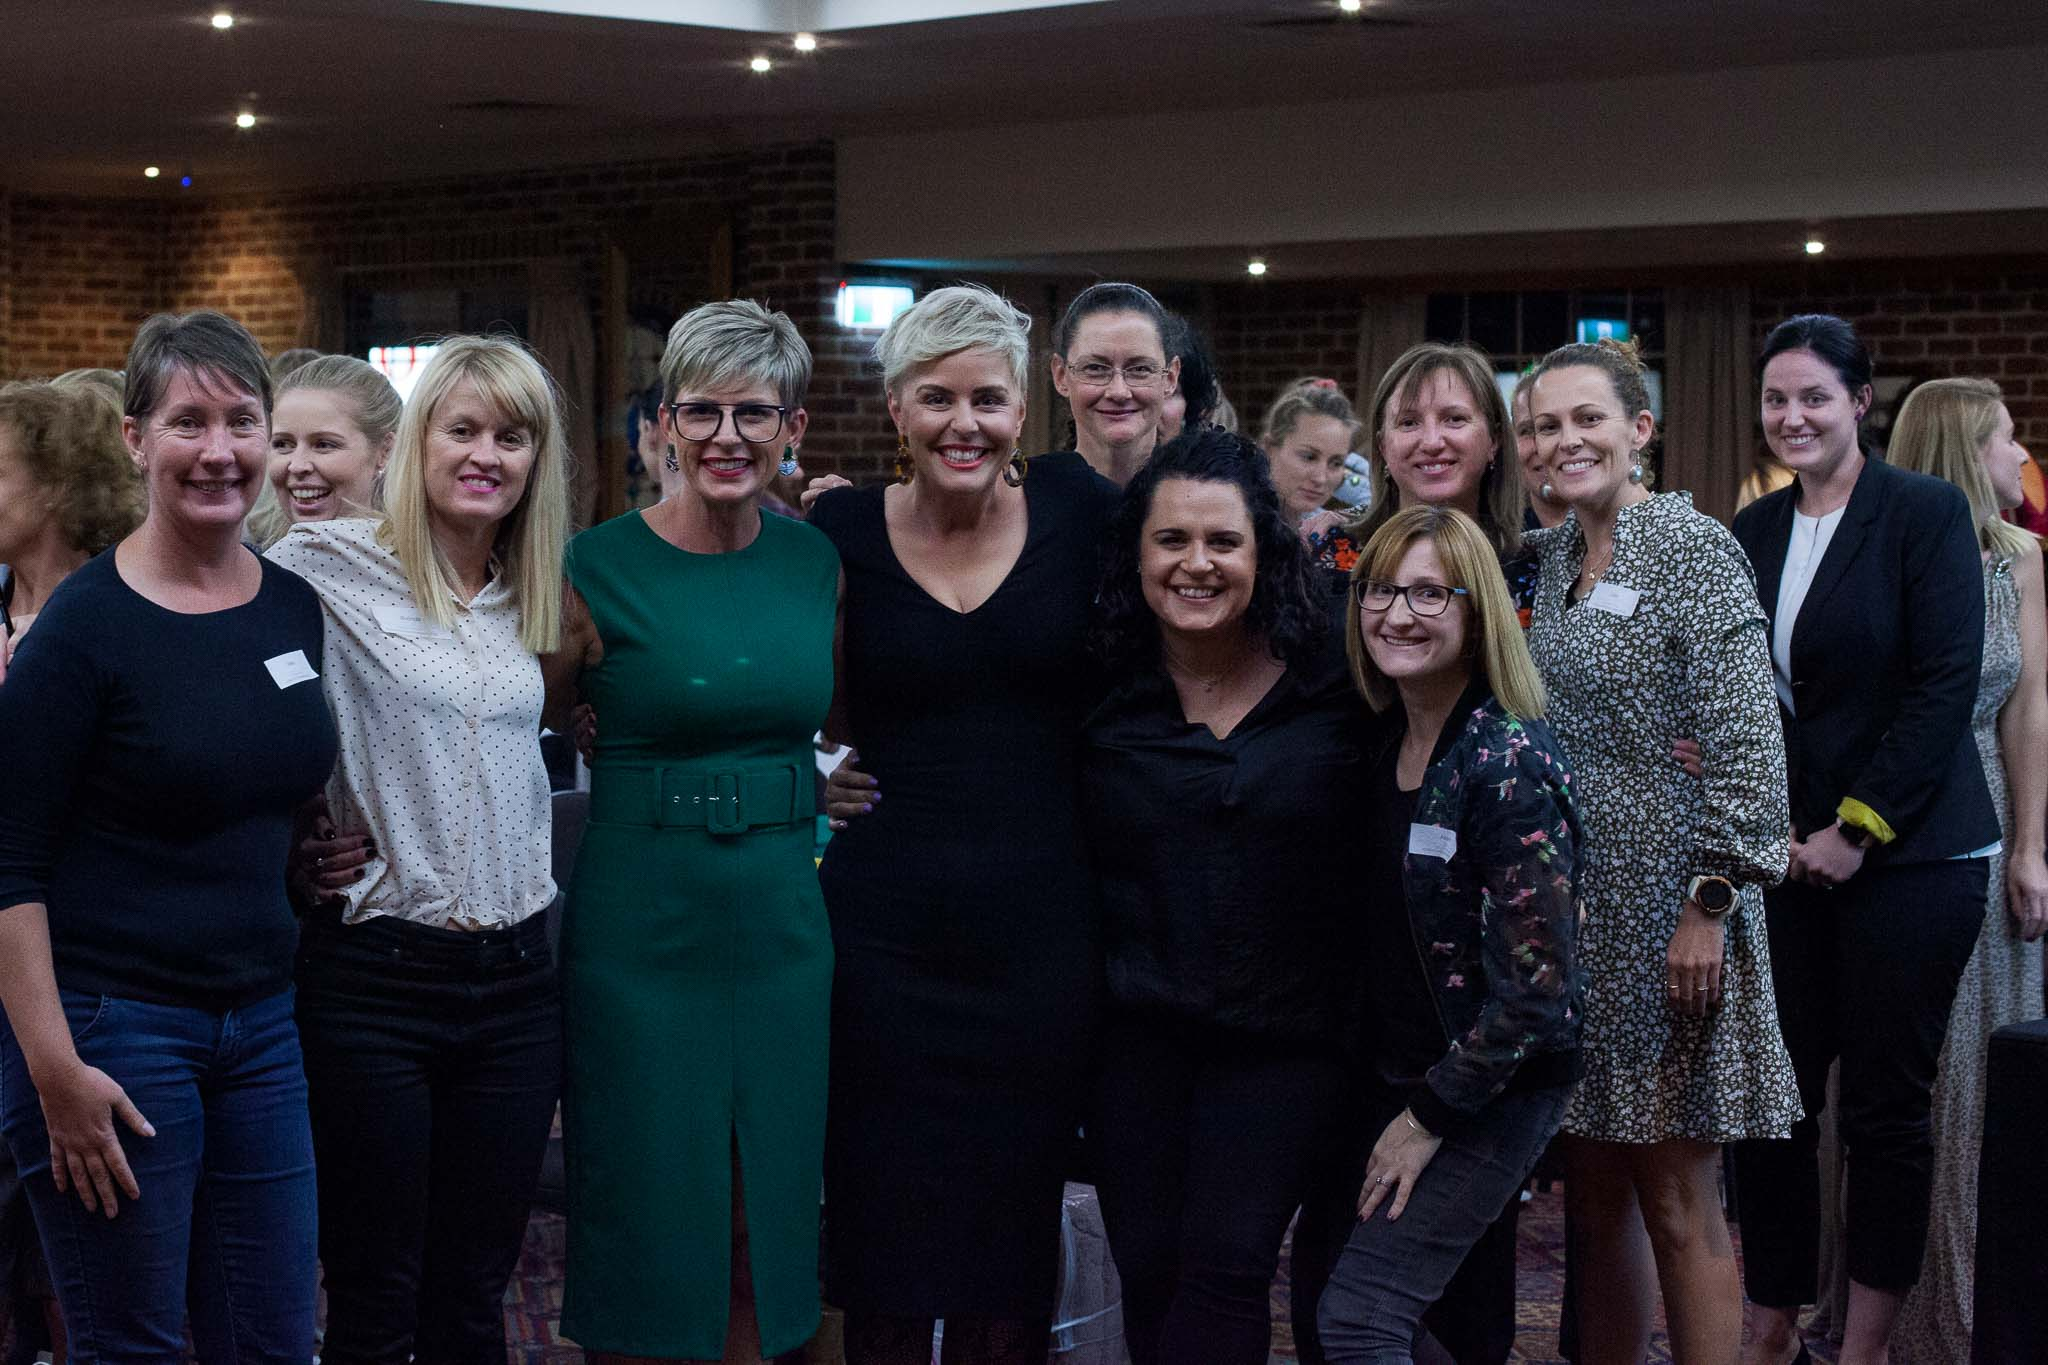 GWIB Workshop with Shekan - https://www.griffithwomeninbusiness.org/wp-content/uploads/2019/05/Griffith-Women-in-Business-GWIB-Workshop-SheKan-WEB-7222.jpg